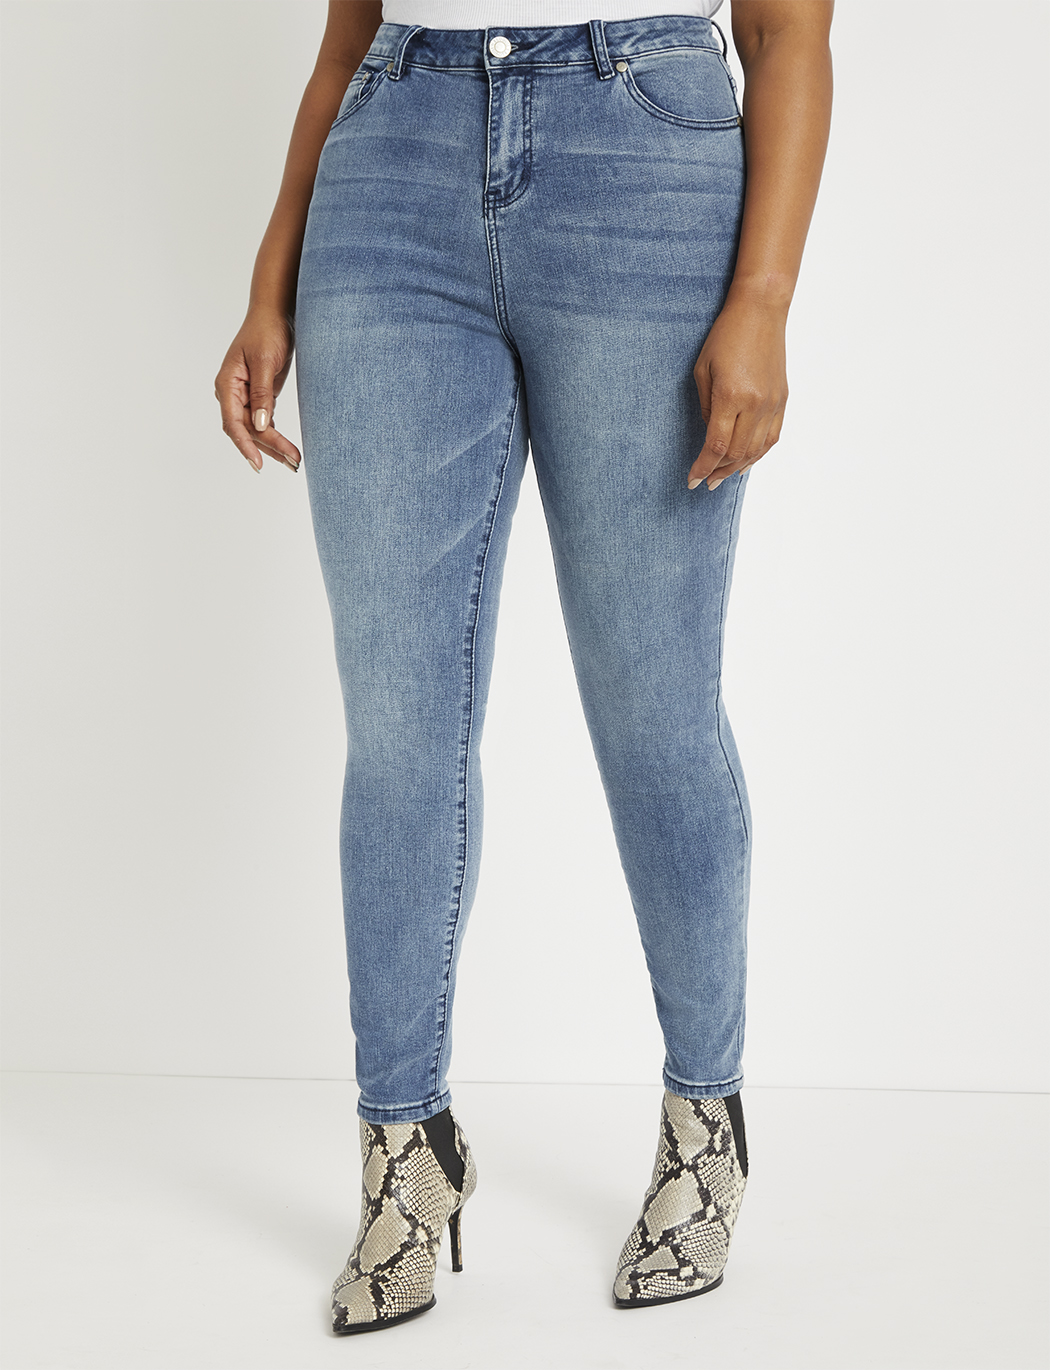 Classic Fit Olivia Sculpting Skinny Jean